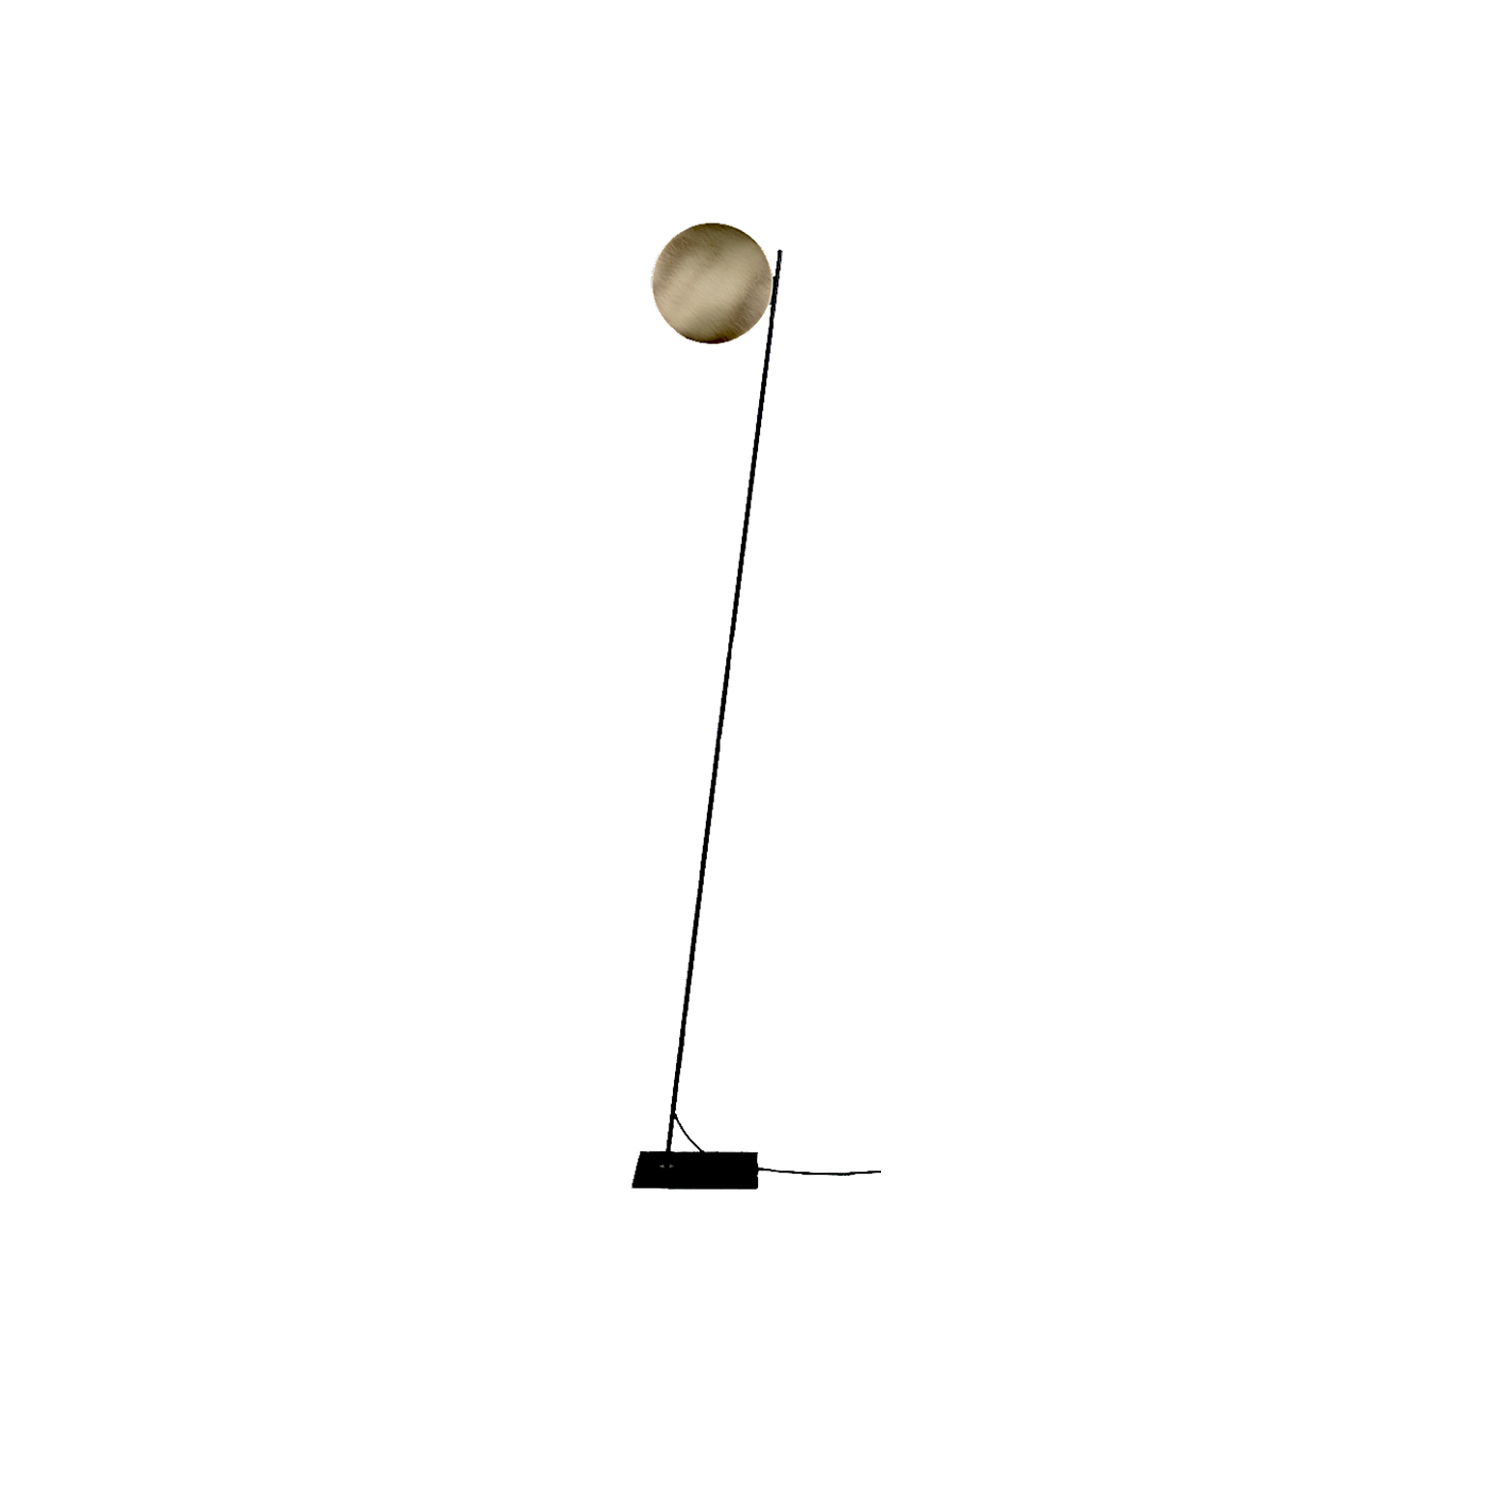 """Lederam F0 Floor Lamp - The new lamps and upgrades were presented in preview at the Salvioni Milano Durini showroom during the Fuorisalone 2018. Available starting from September, the items have been collected in the new brochure """"Release 09.18"""". 